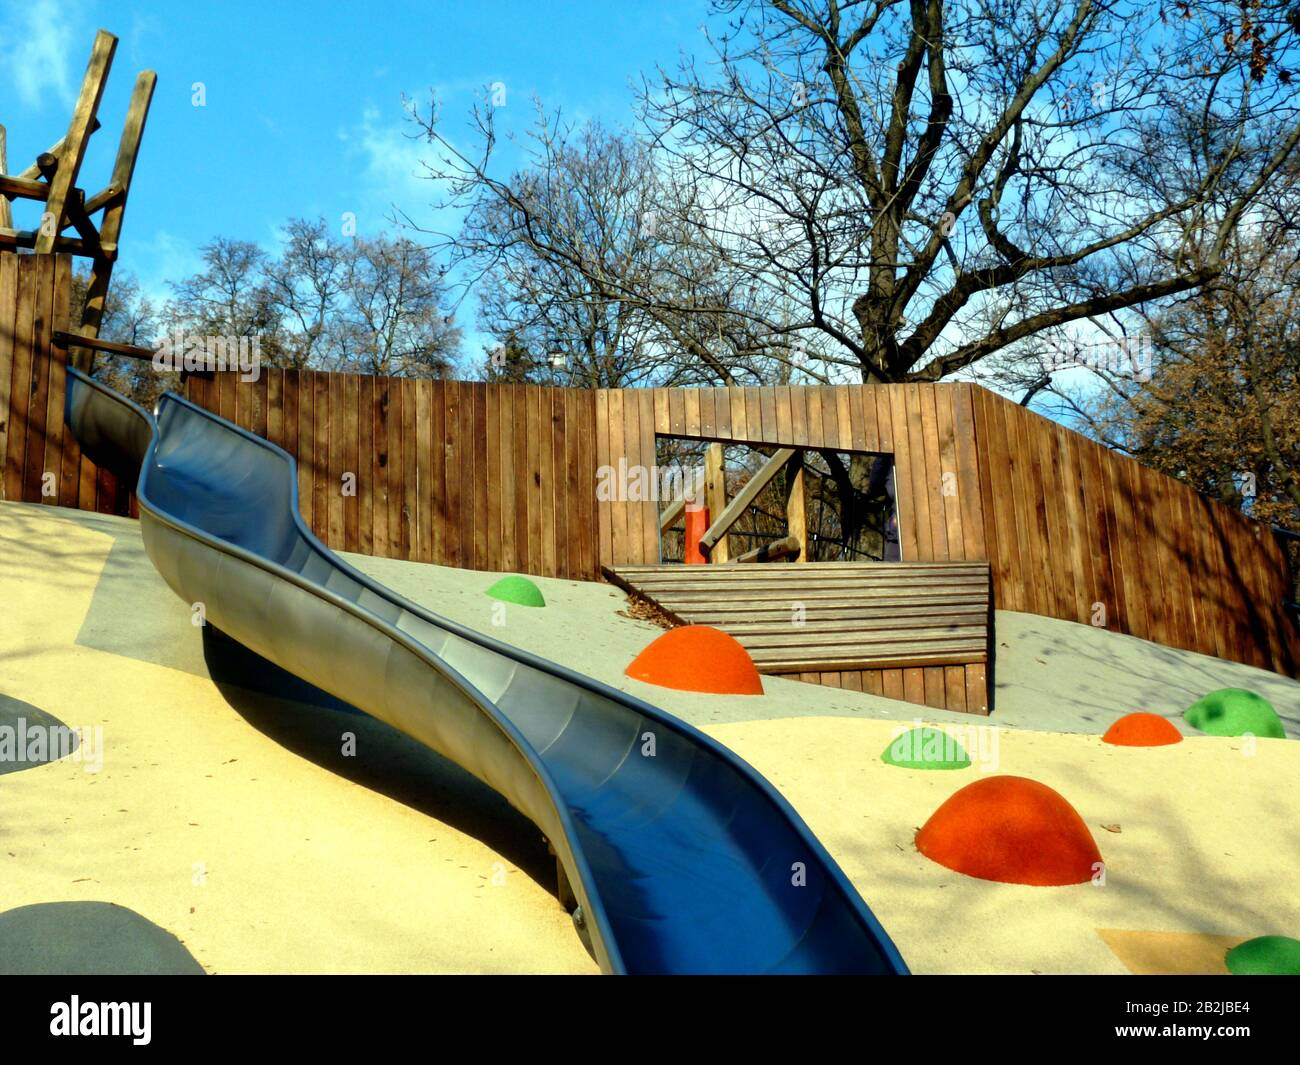 Stainless Steel Slide In Public Park Colorful Orange Yellow And